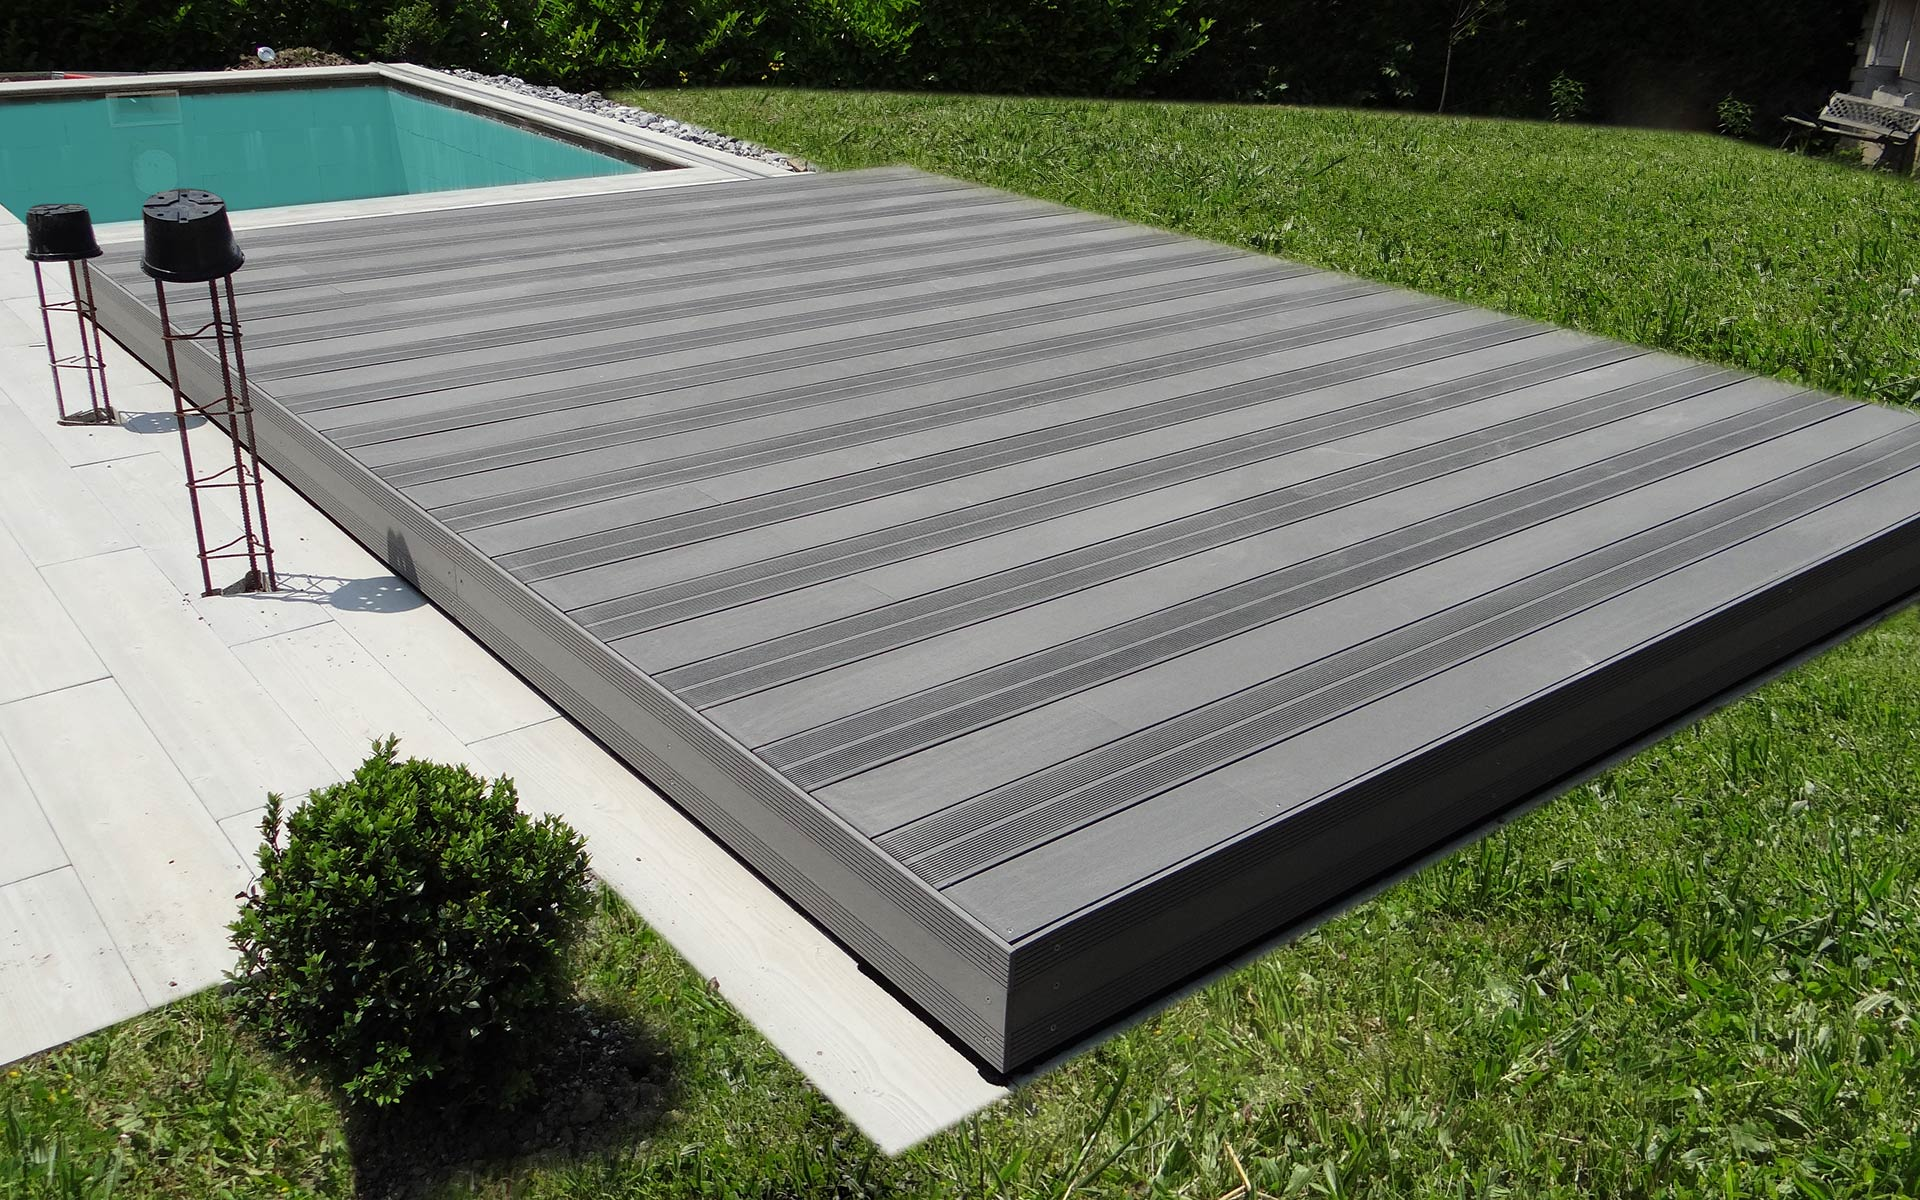 Terrasse mobile pour piscine hidden pool fond mobile for Piscine couverture mobile